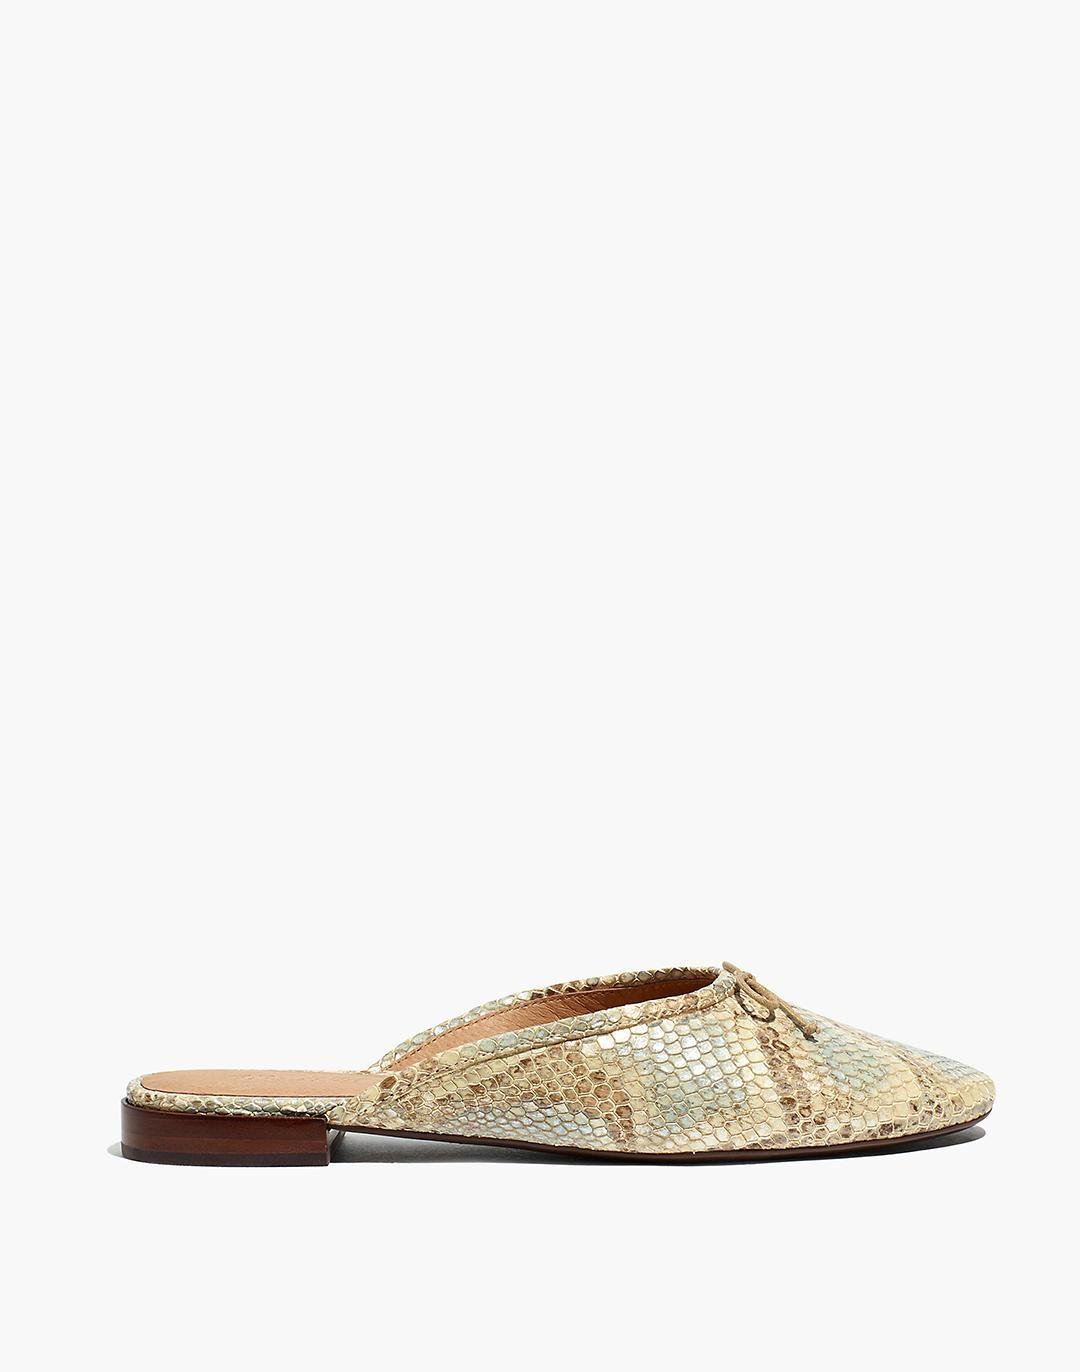 The Adelle Ballet Mule in Snake Embossed Leather 1